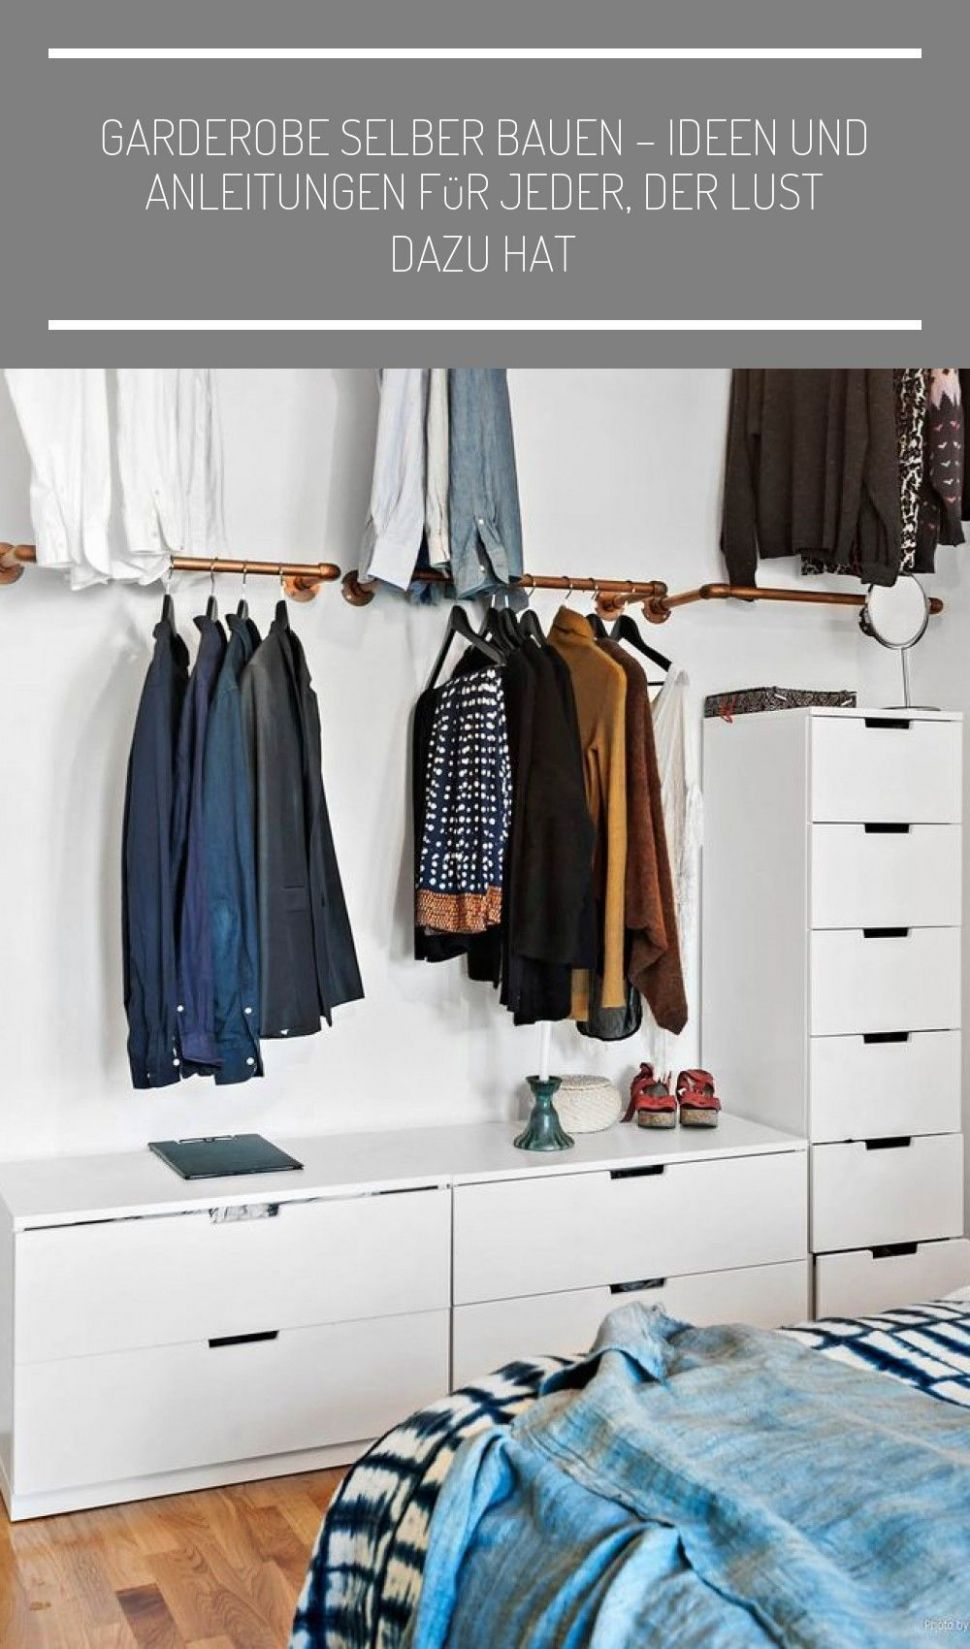 Pin on Neue wohnung - closet ideas to hang clothes